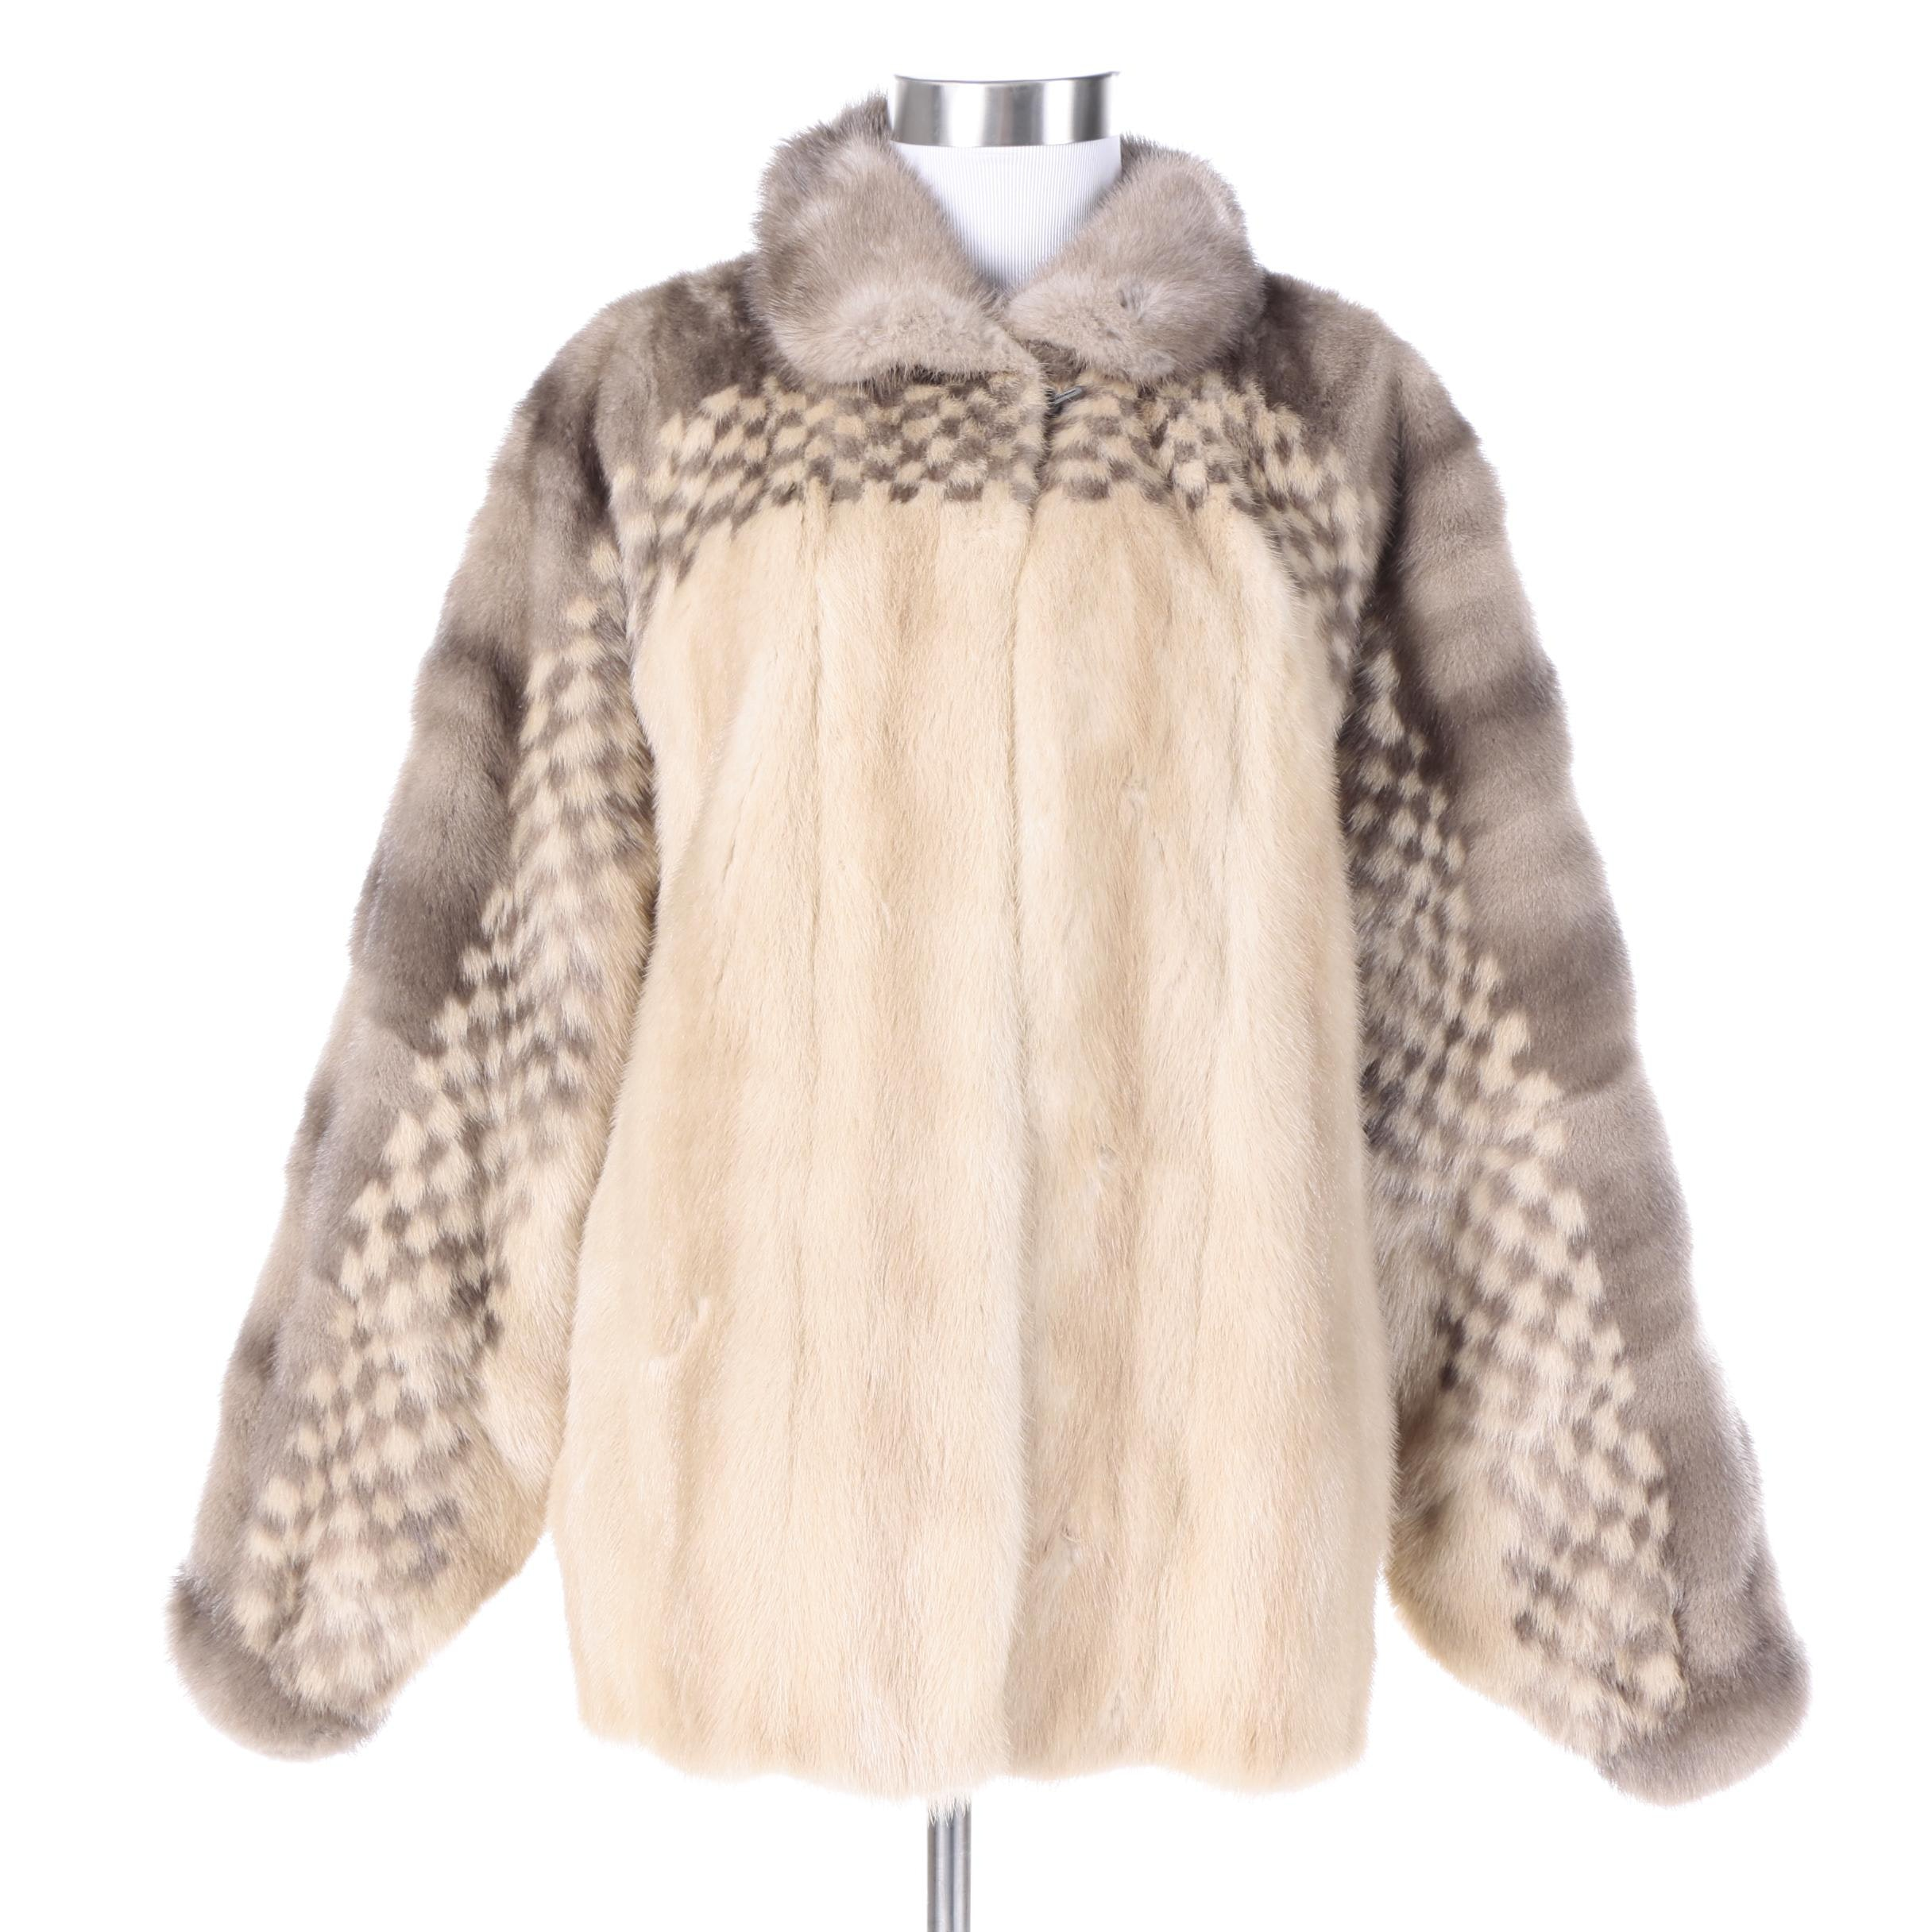 Checkered Patterned Mink Fur Coat